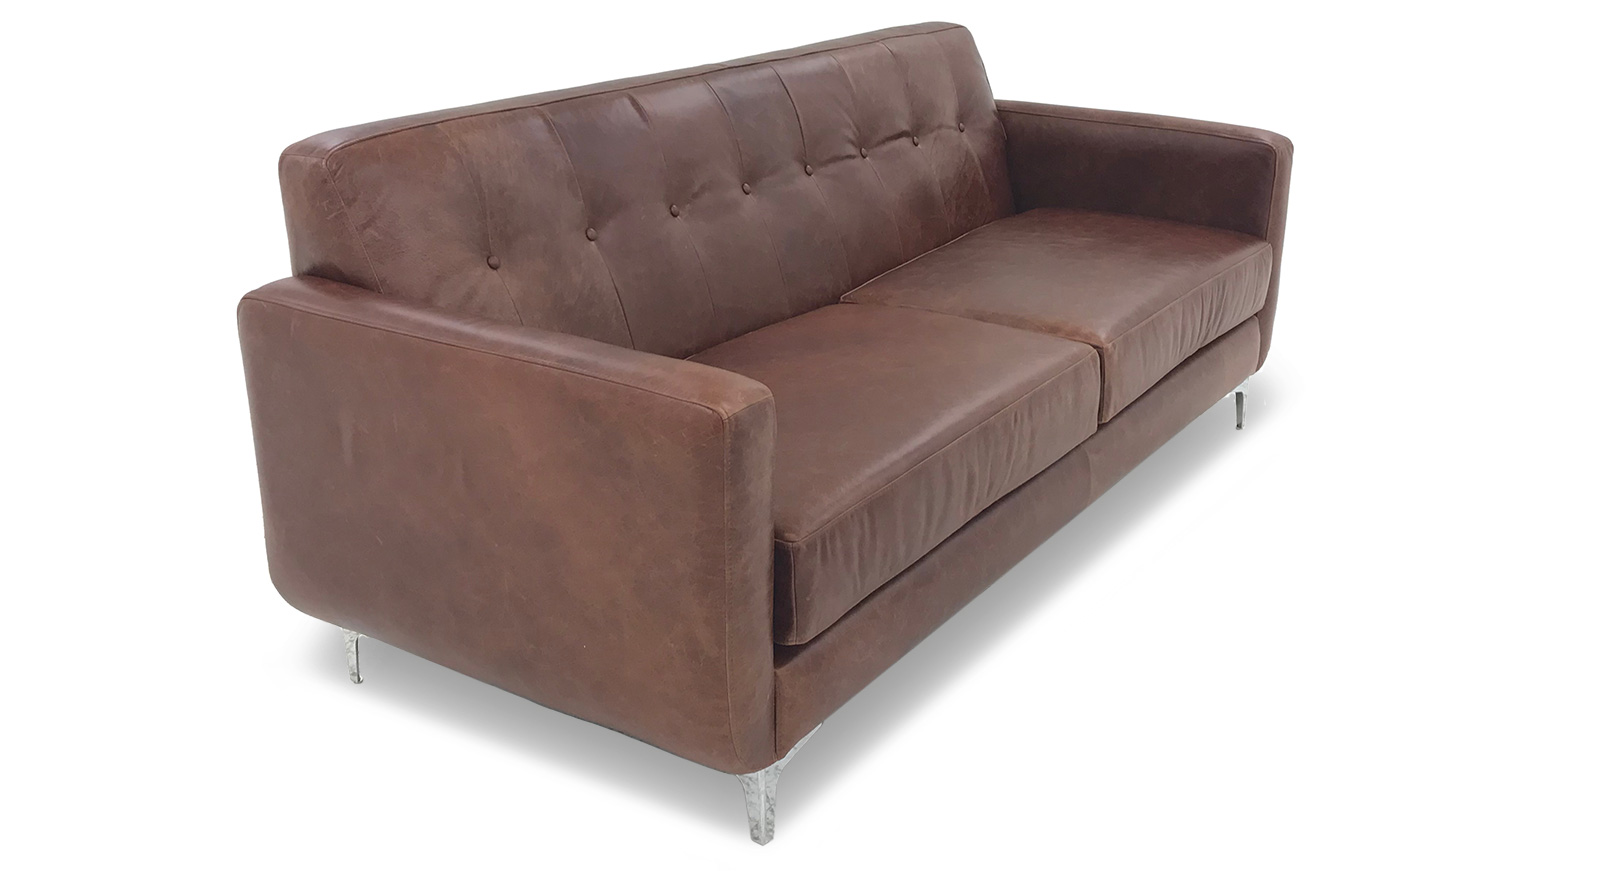 Greta Sofa Metachrome Legs